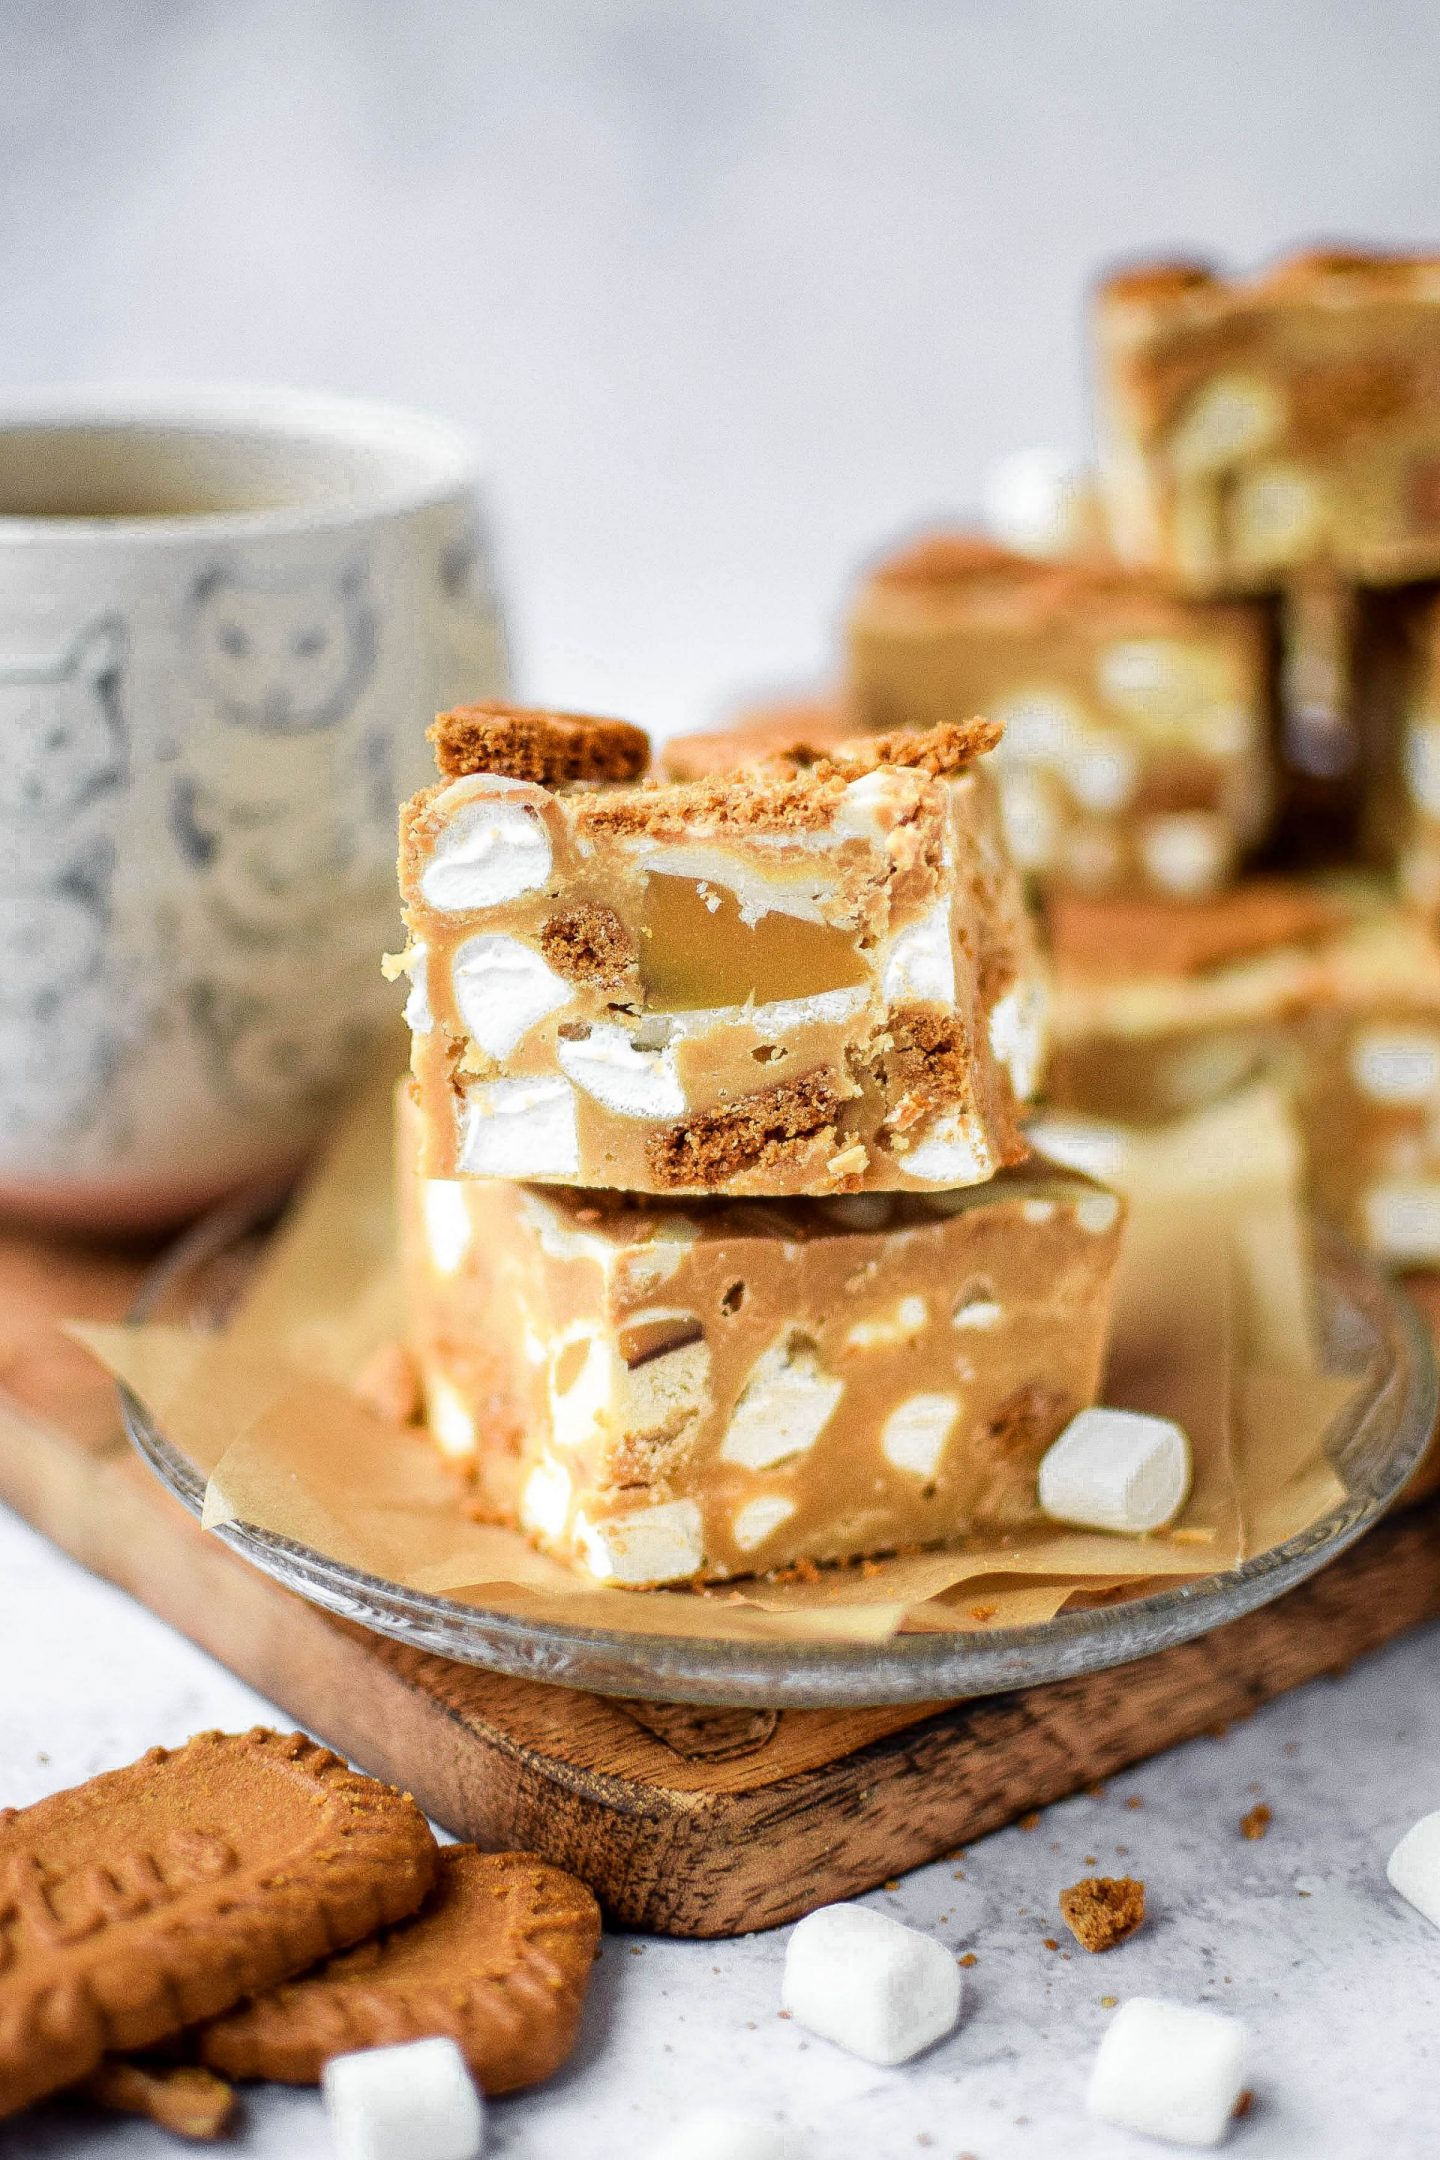 Biscoff Rocky Road piled on a plate